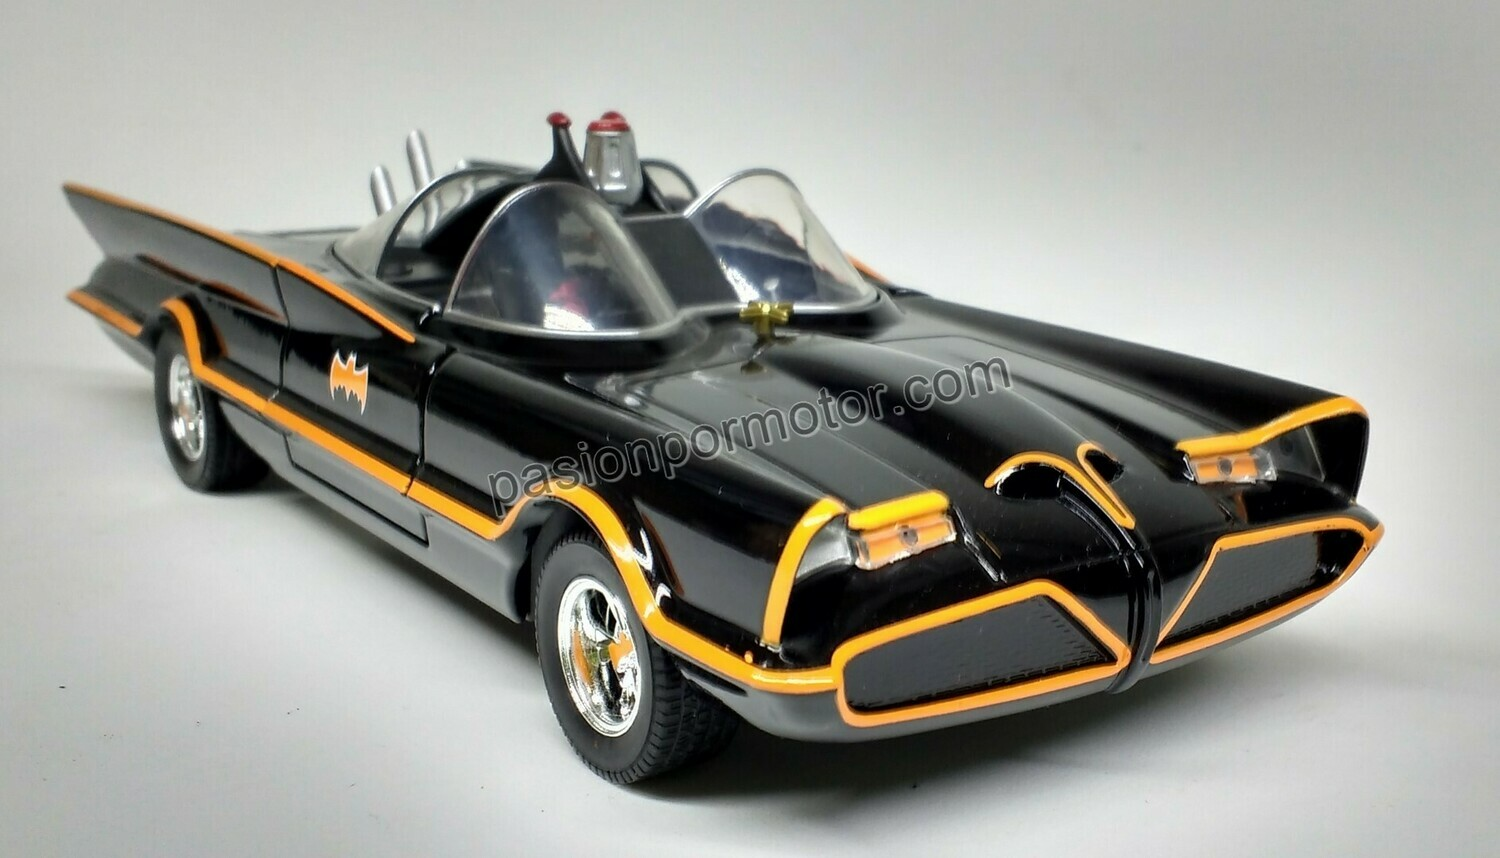 1:24 Batimovil TV Series 1966 Batman Jada Toys Metals DC Comics En Display / A Granel